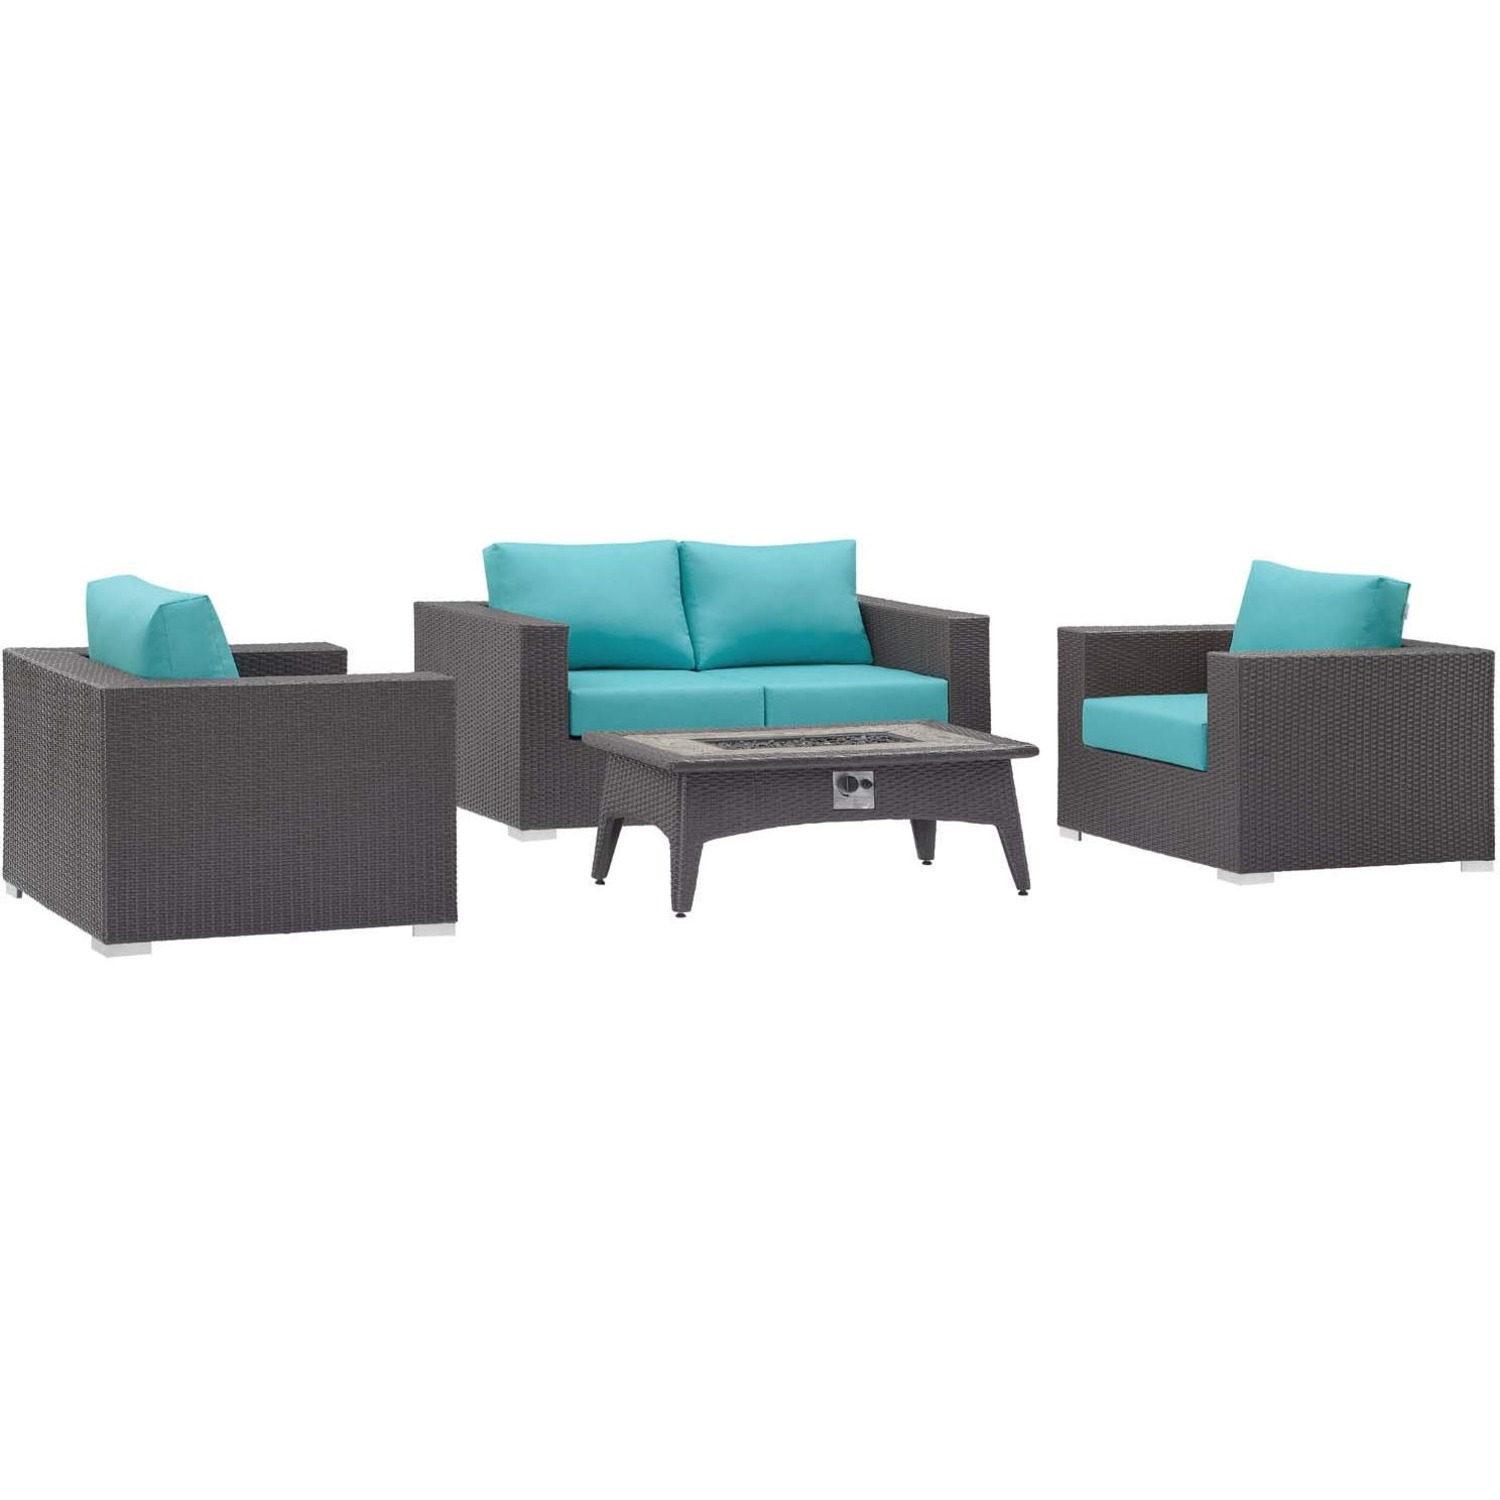 4-Piece Outdoor Sectional In Turquoise W/ Fire Pit - image-0